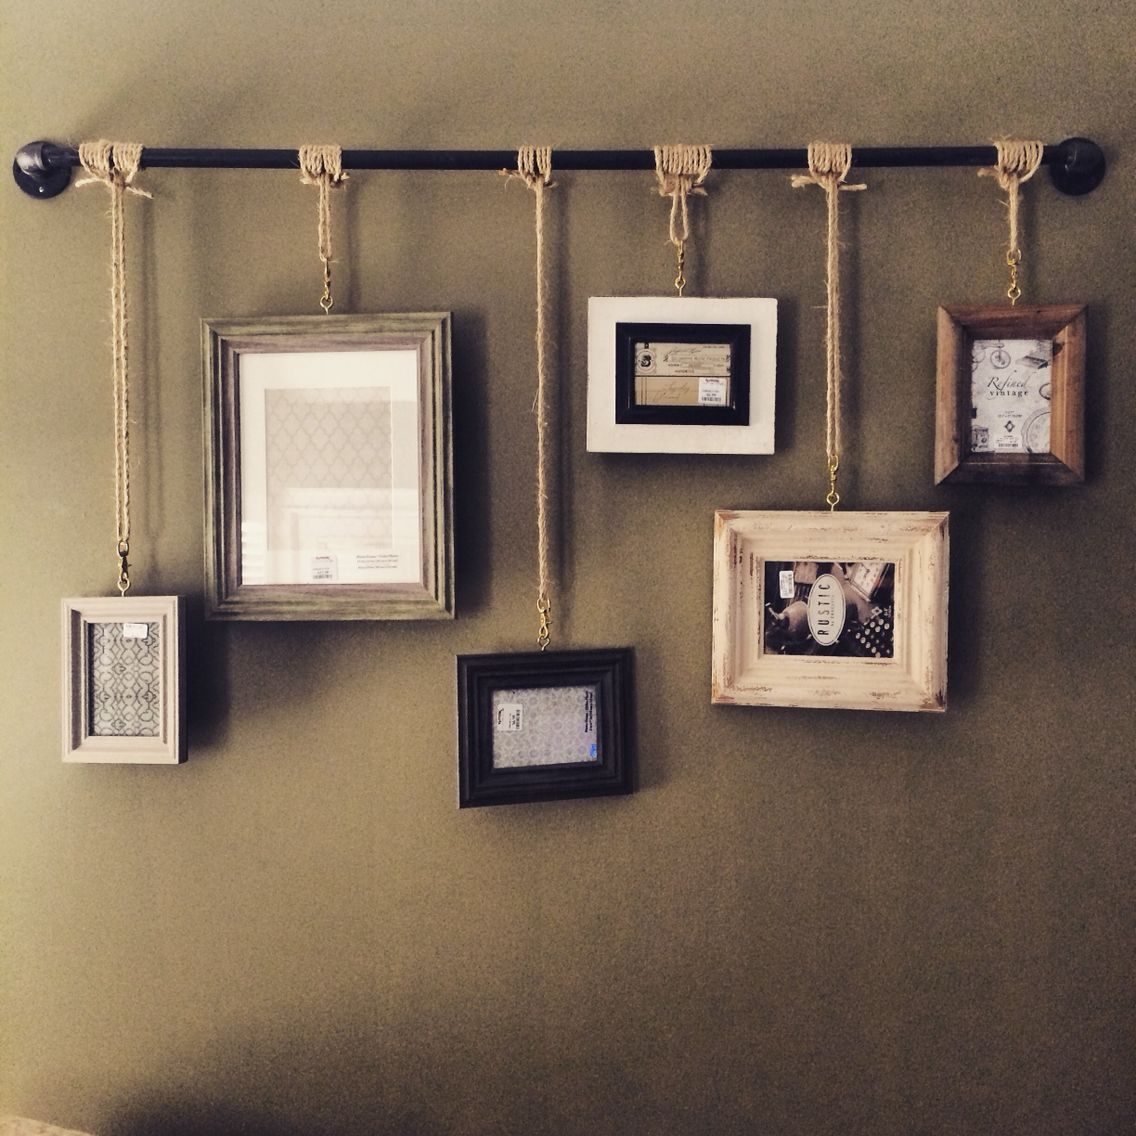 Hanging Wall Pictures Using Black Pipe And Rope Prusic Knot Quick Release Clips To Change Frames Or Photos